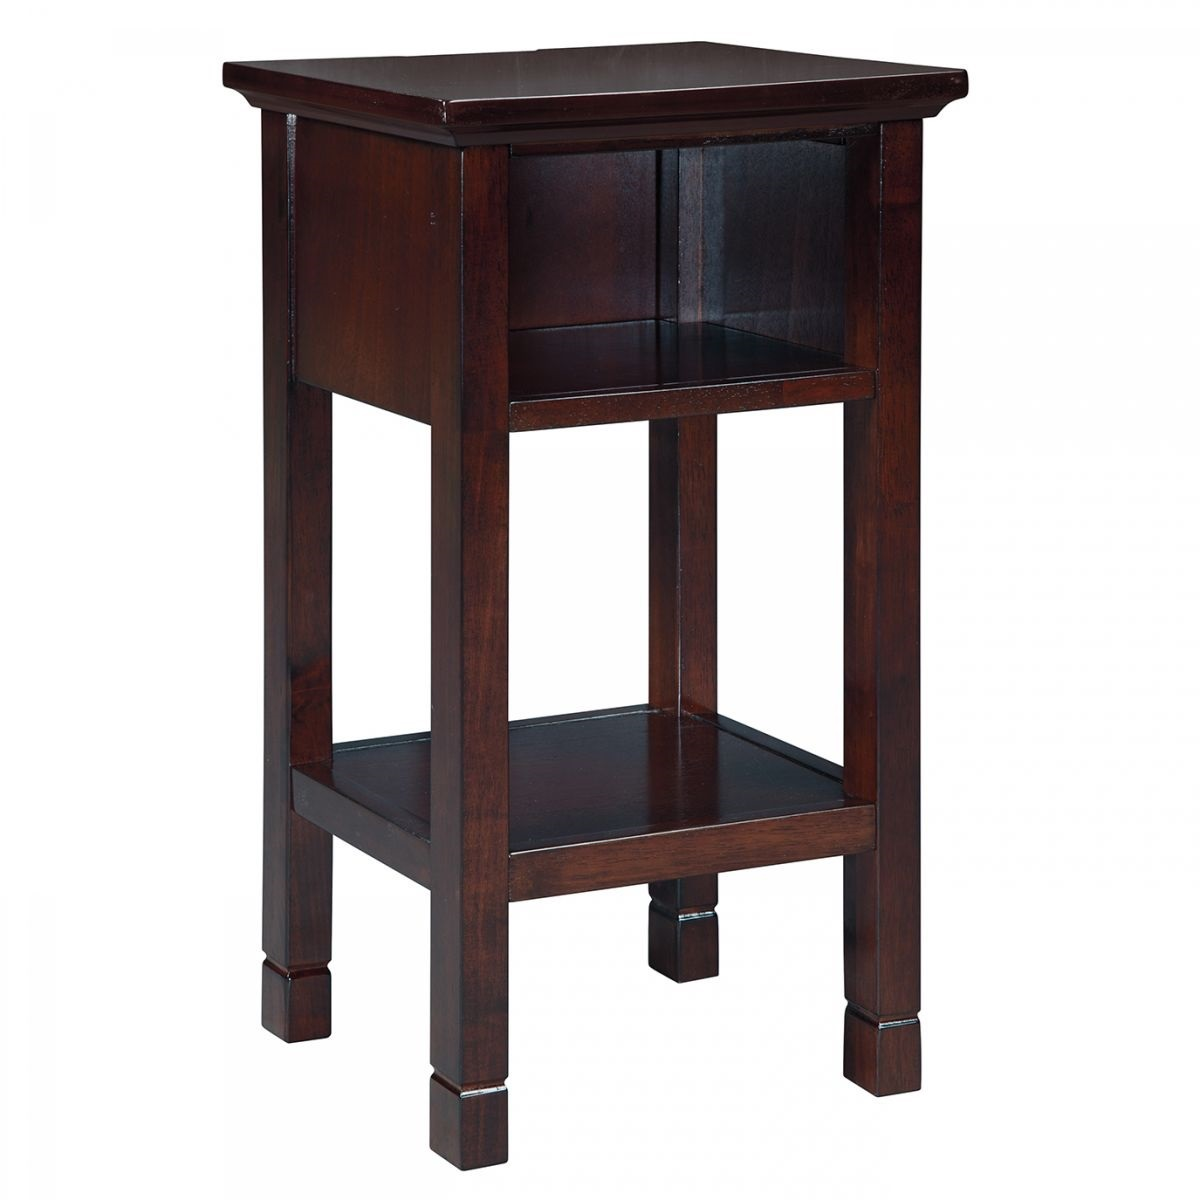 marnville brown accent table with usb port badcock more ture pottery barn bookcase target console antique blue end ryobi seat for drums long white side living room tables low